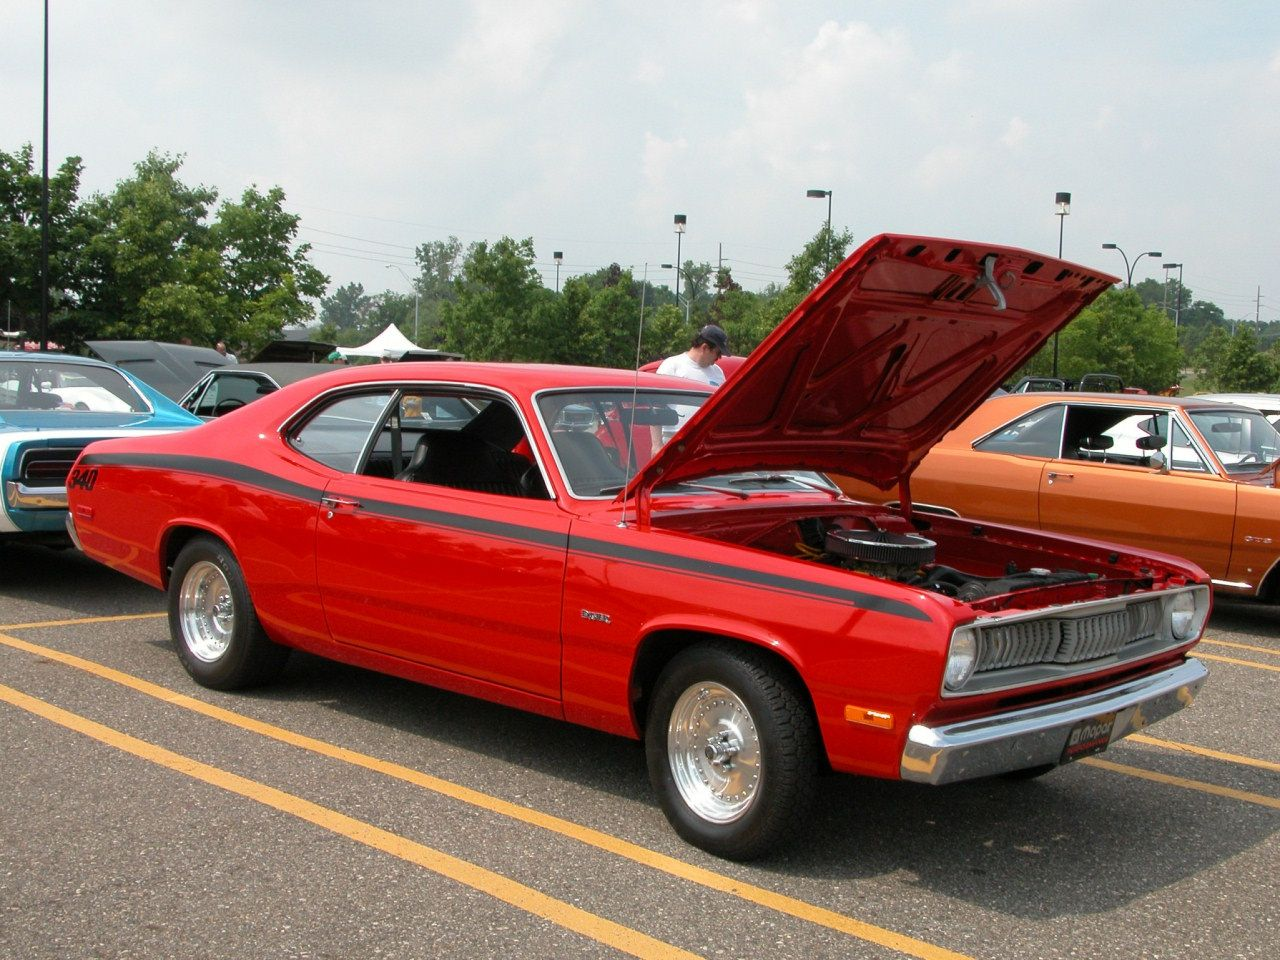 1972 Plymouth Duster 340 Red Fvr 2005 Cema Dscn5557 Plymouth Duster Mopar Muscle Cars Best Muscle Cars